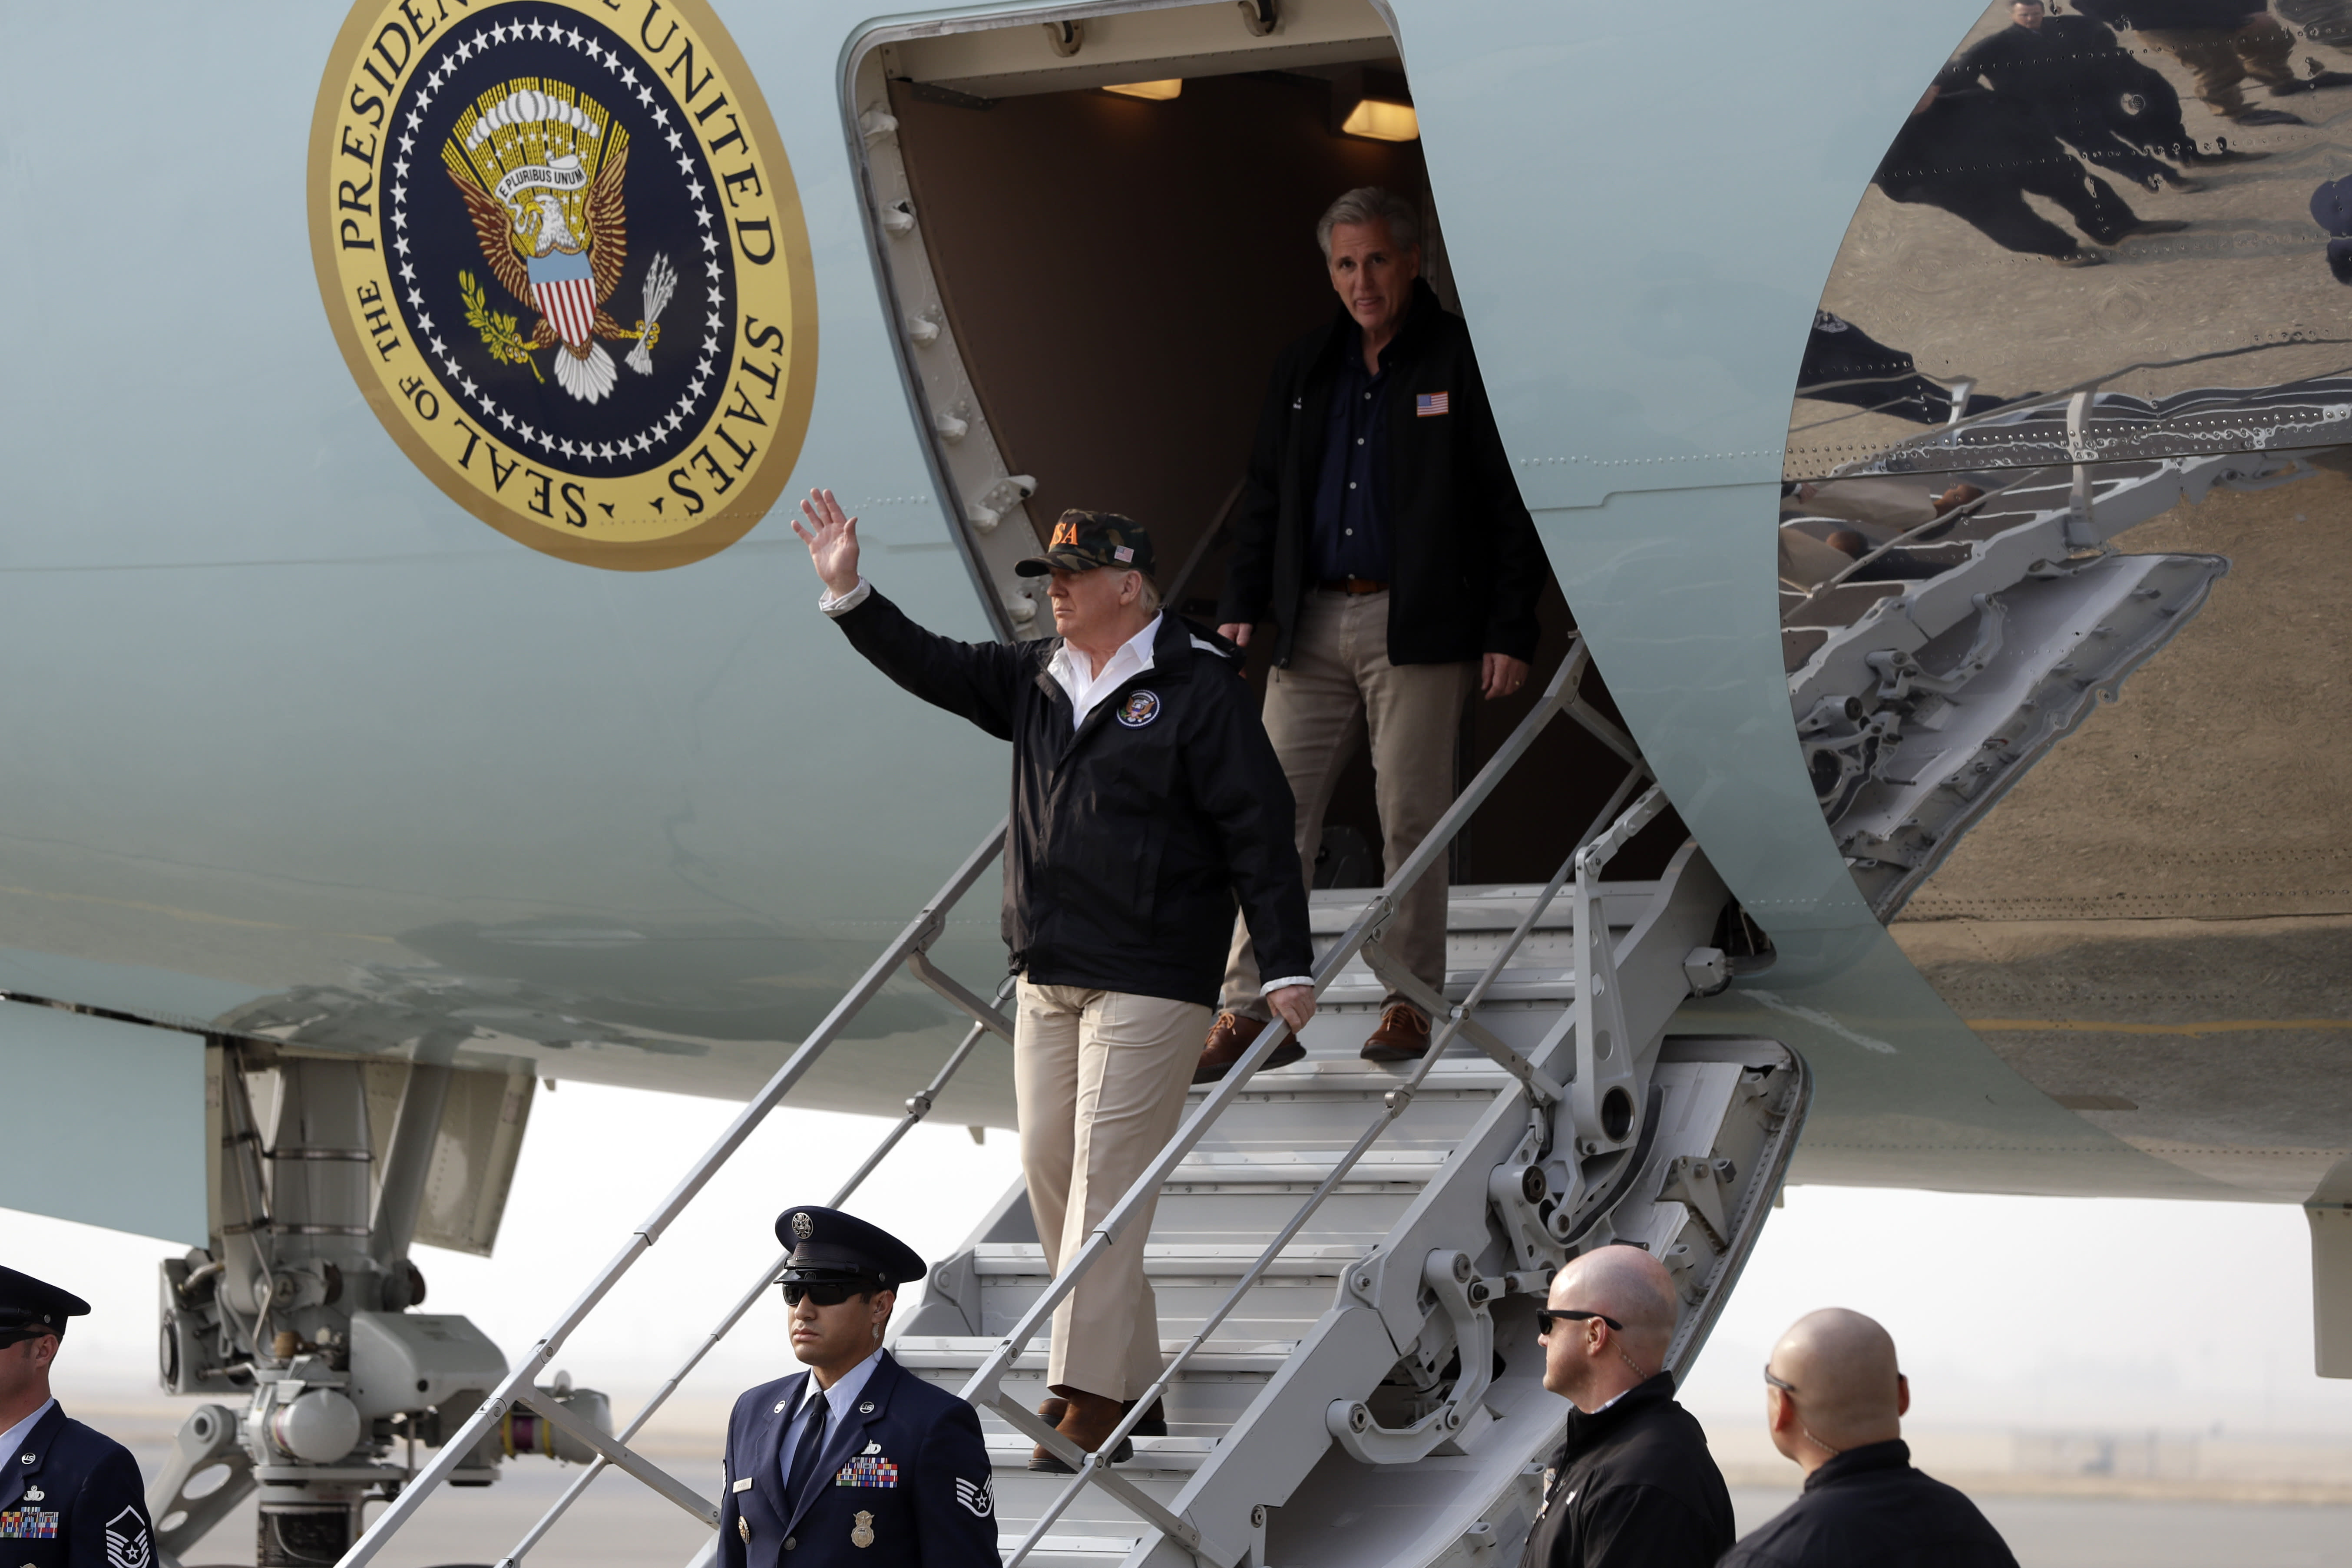 <p>President Donald Trump waves as he arrives on Air Force One at Beale Air Force Base for a visit to areas impacted by the wildfires, Nov. 17, 2018, at Beale Air Force Base, Calif. He is followed by House Majority Leader Kevin McCarthy of Calif. (Photo: Evan Vucci/AP) </p>